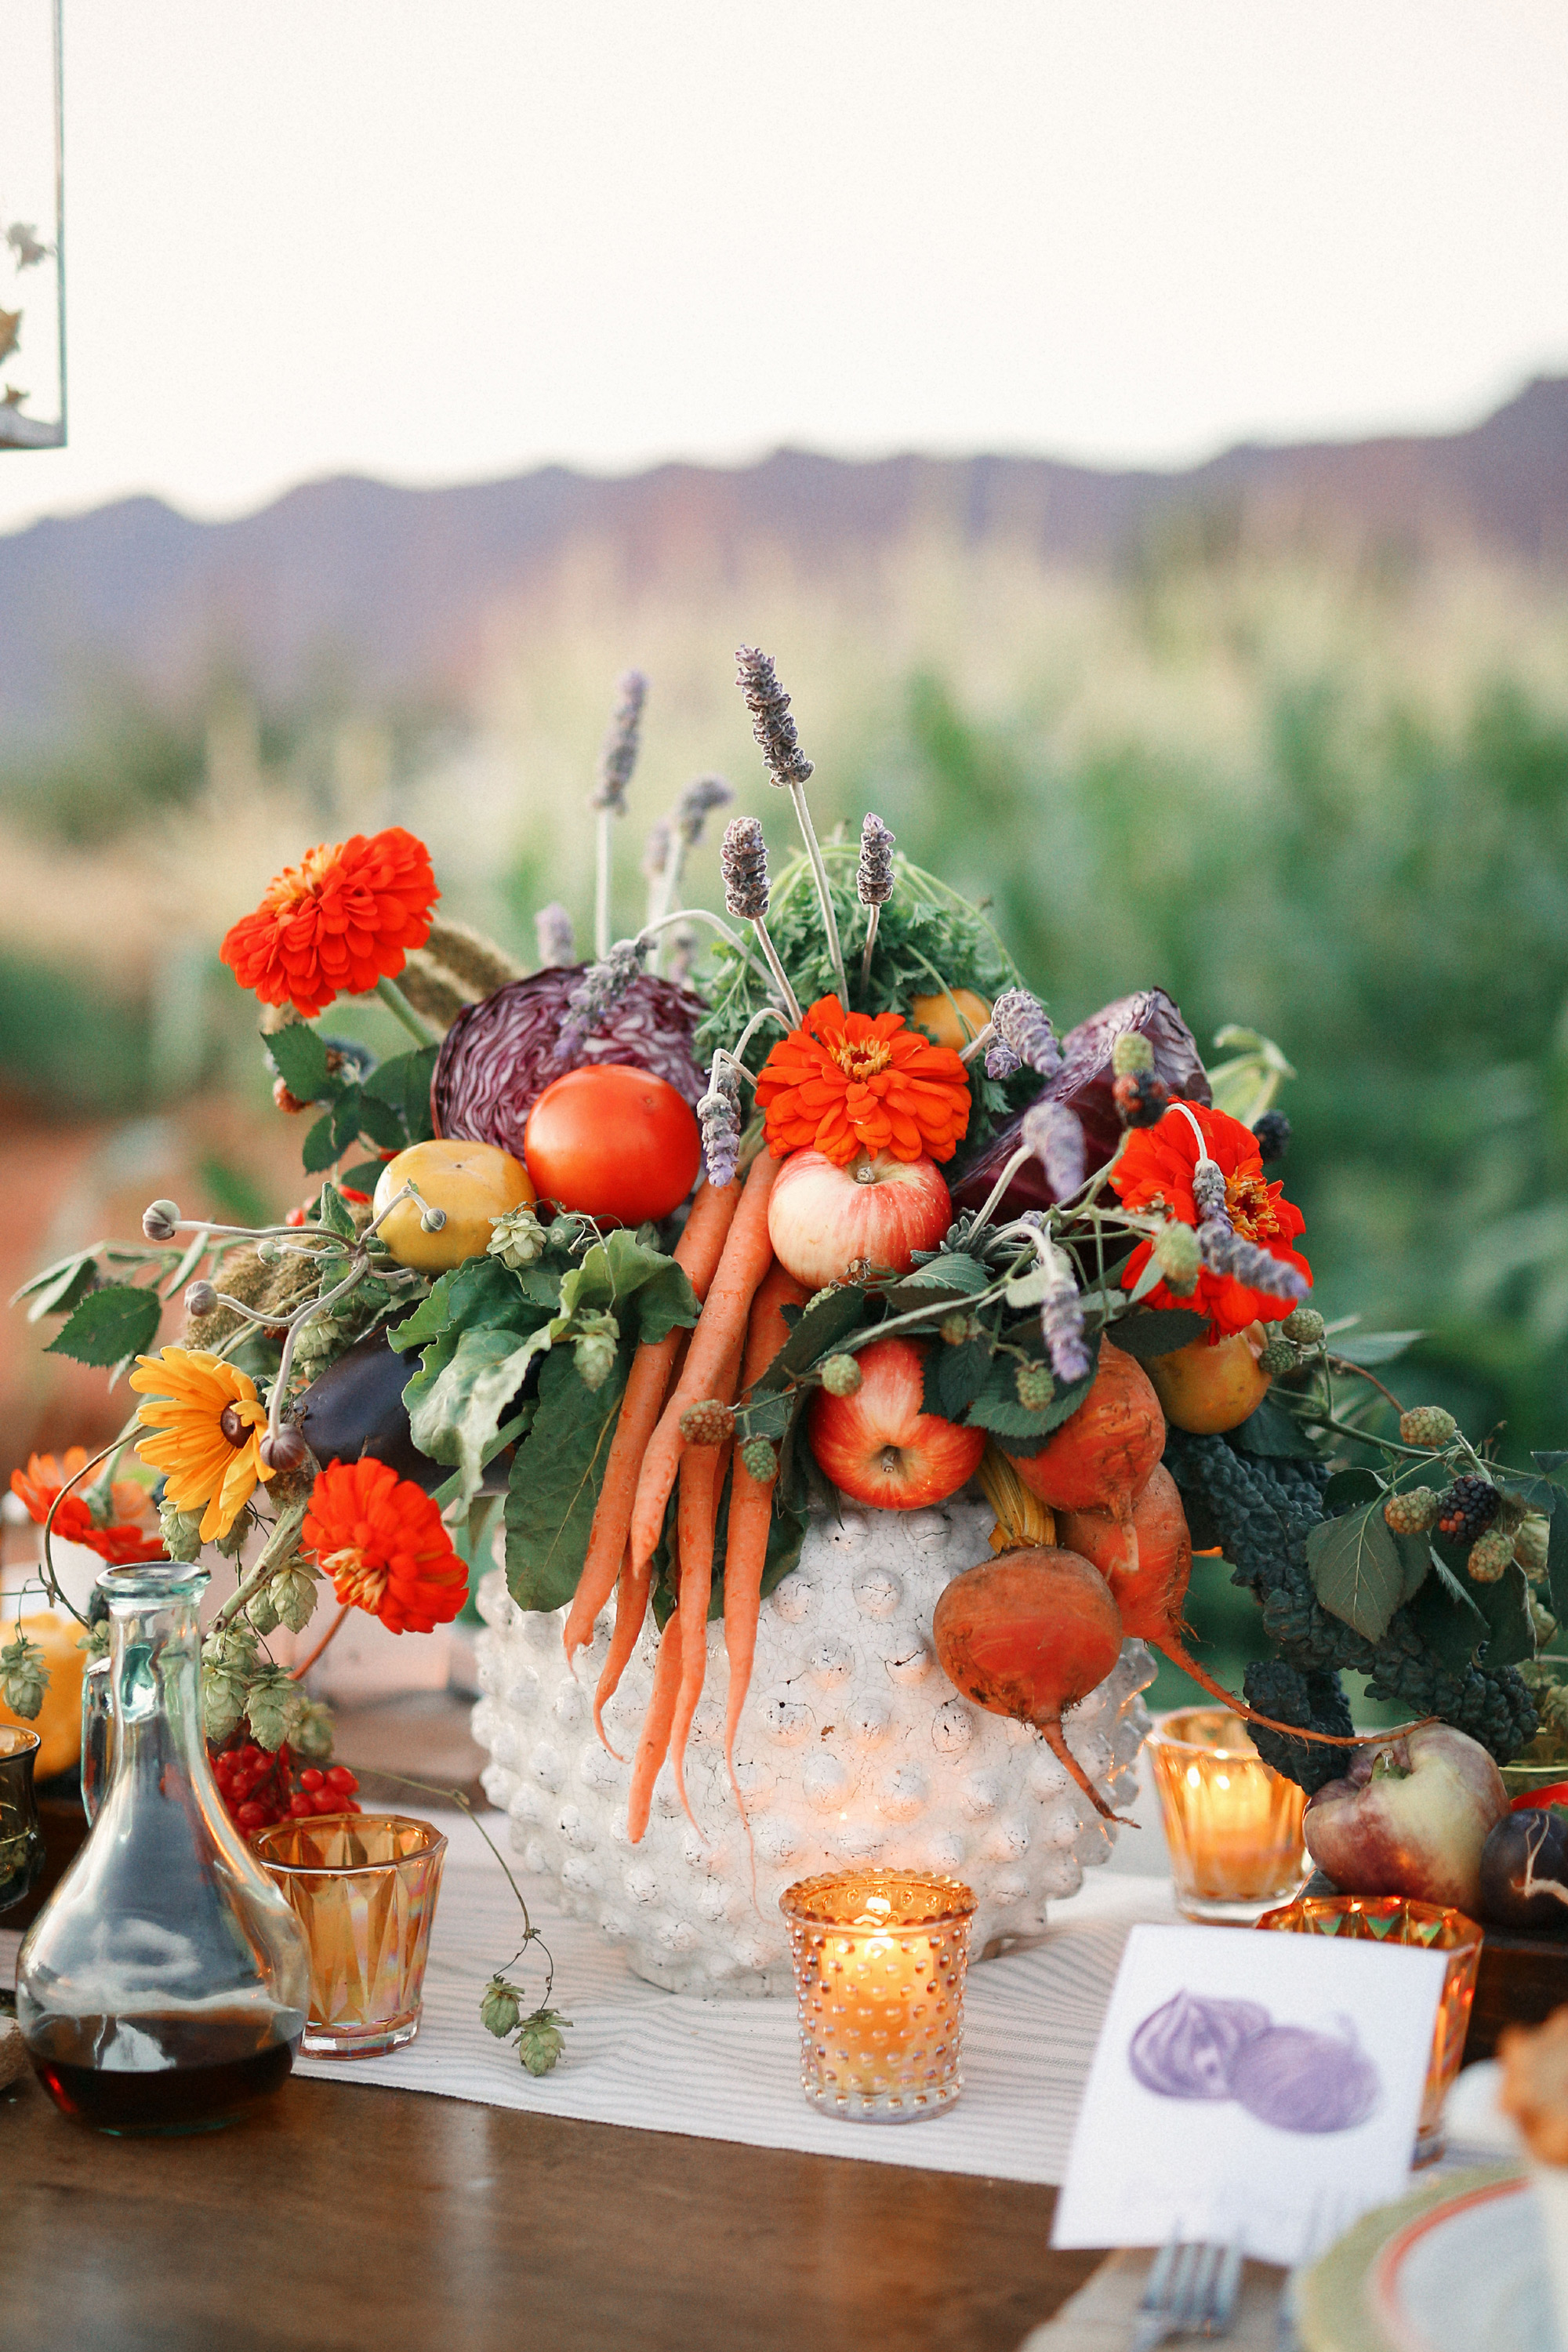 How to Plan the Perfect Farm-to-Table Wedding Menu